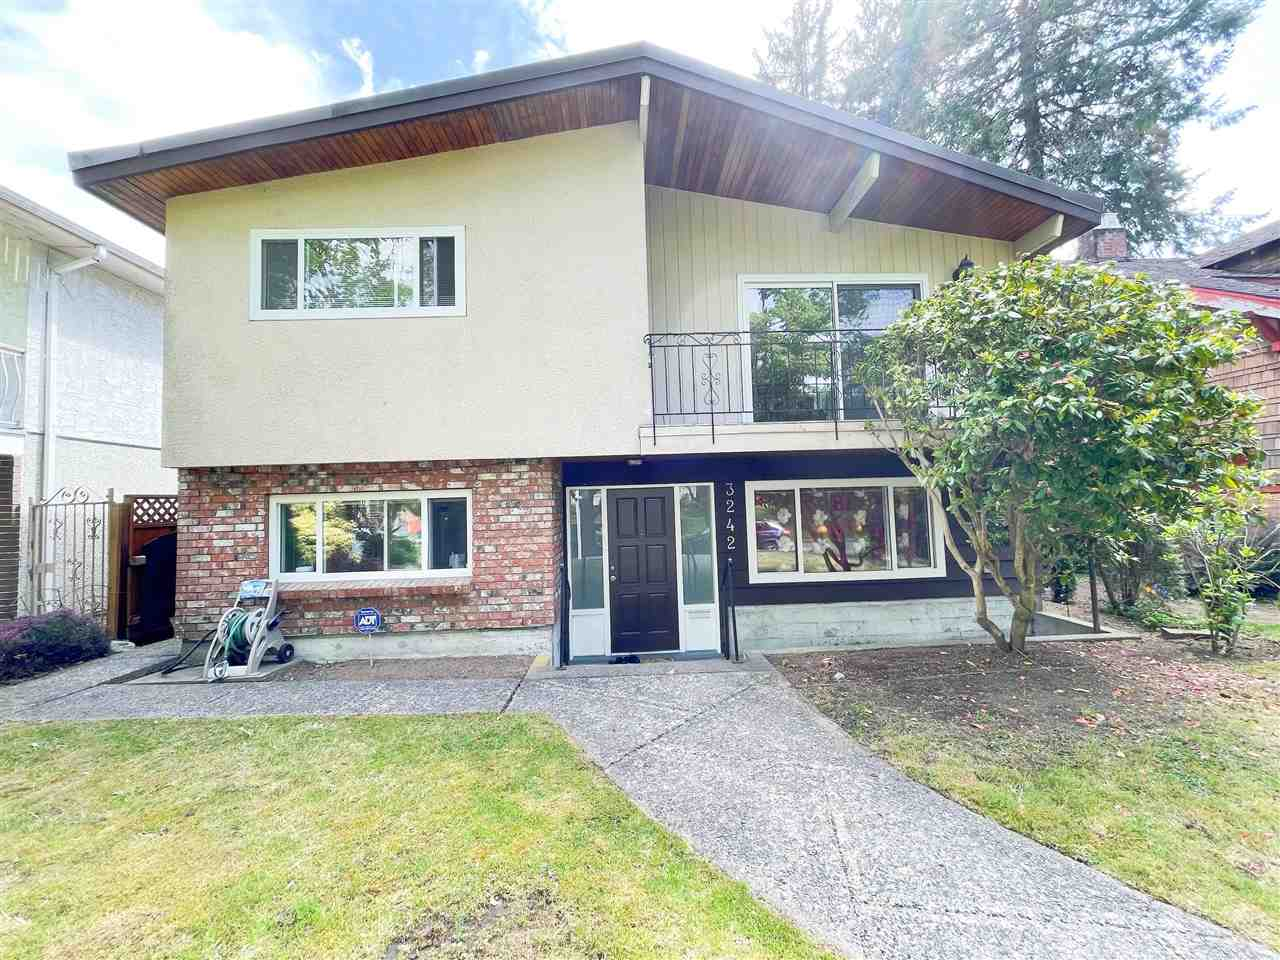 3242 W 29TH AVENUE - MacKenzie Heights House/Single Family for sale, 5 Bedrooms (R2575858)